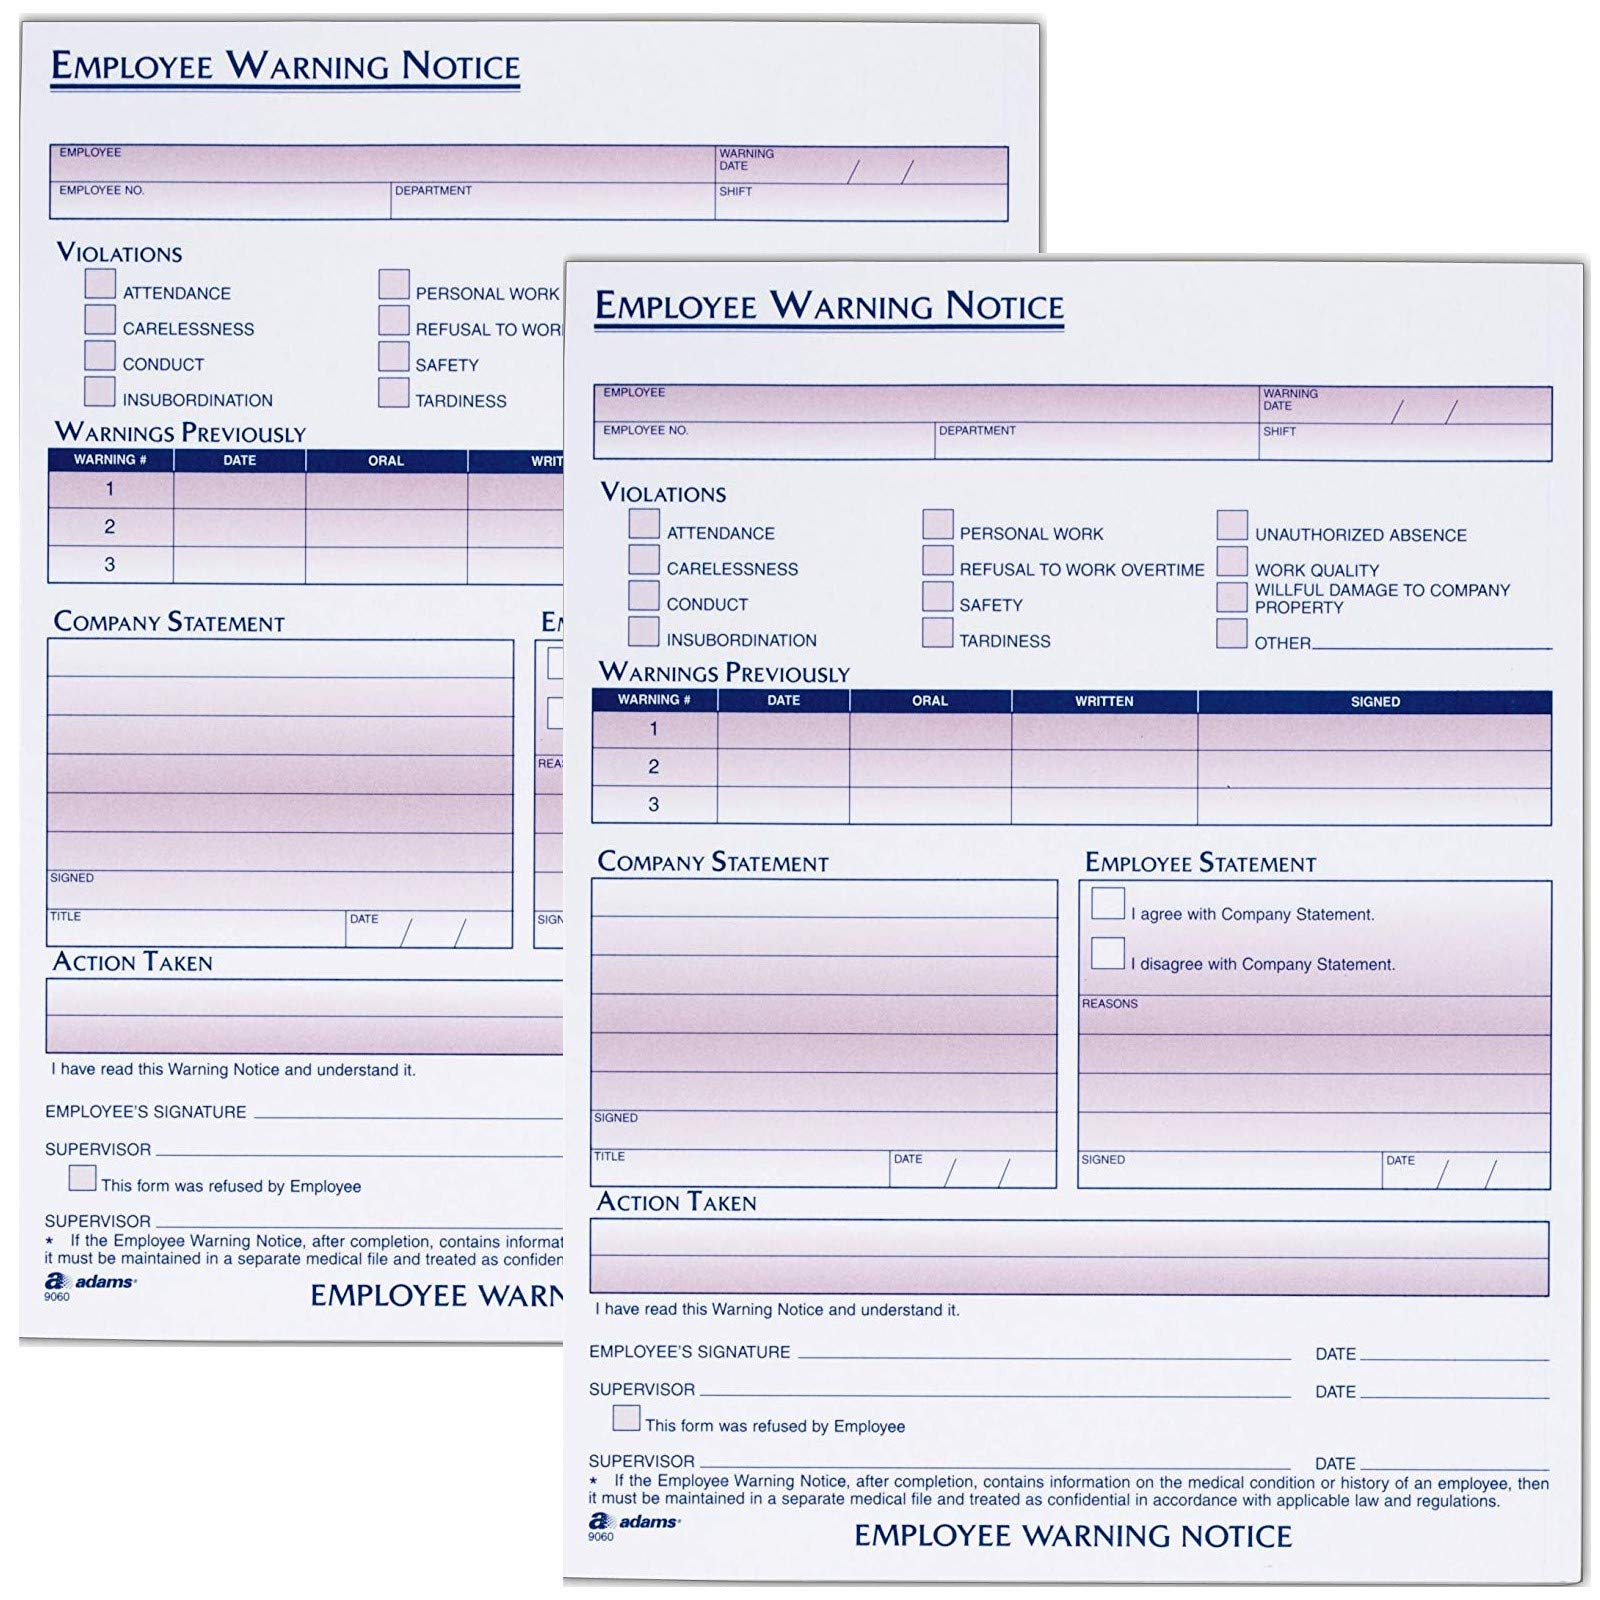 Adams Employee Warning Notice Form, 8.5 x 11 Inches, 4 Pads of 50 Forms, 200 Total forms, 1-Part Each (9060)